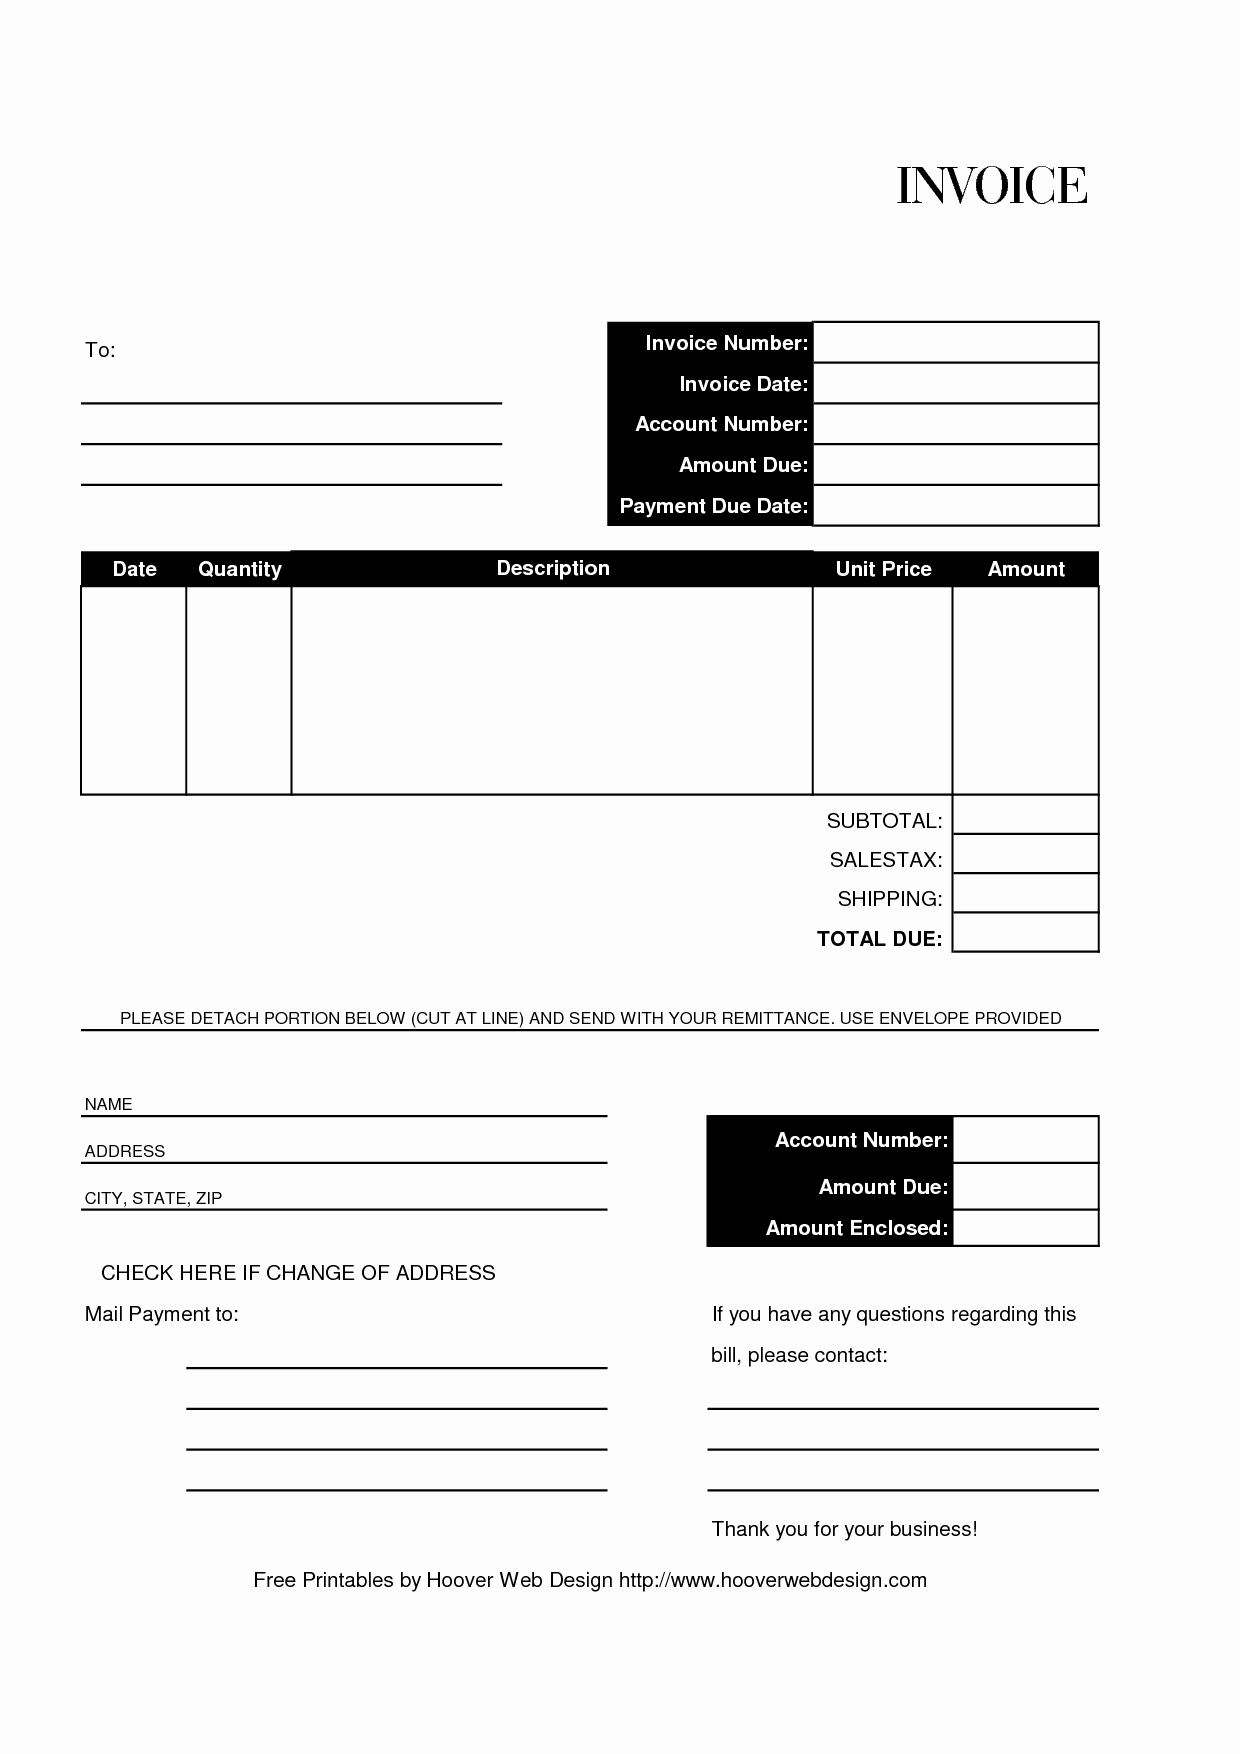 Free Templates for Billing Invoices Elegant Free Editable and Printable Billing Invoice Template